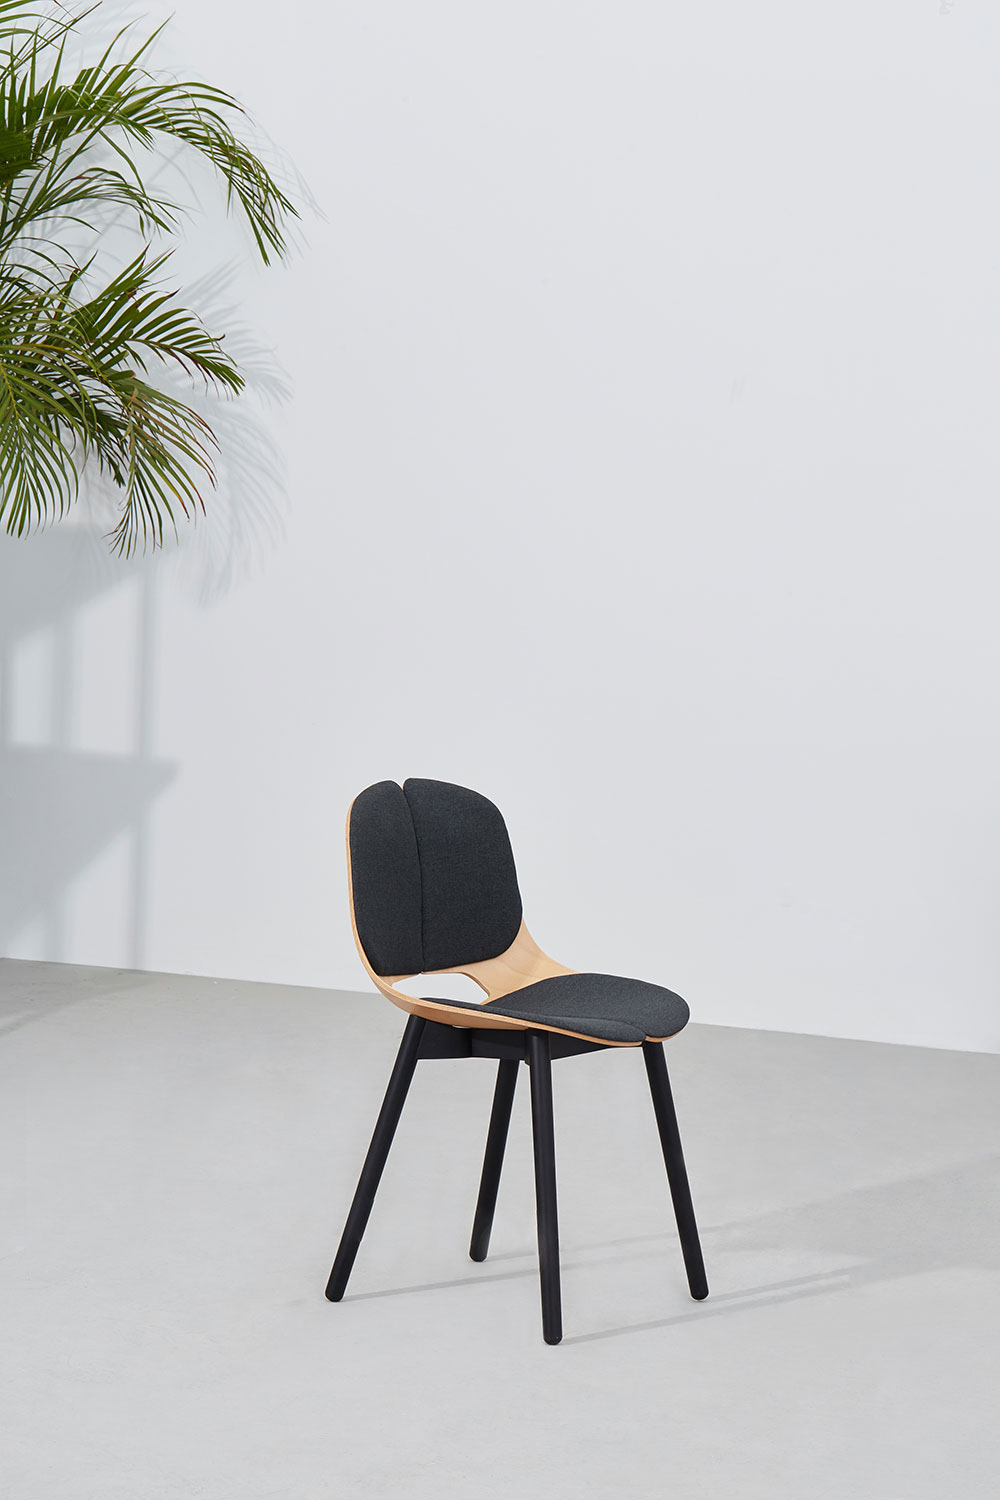 The Chair Is Removable Thanks To A Piece Of Metal Injected Which Gives The  Necessary Rigidity.